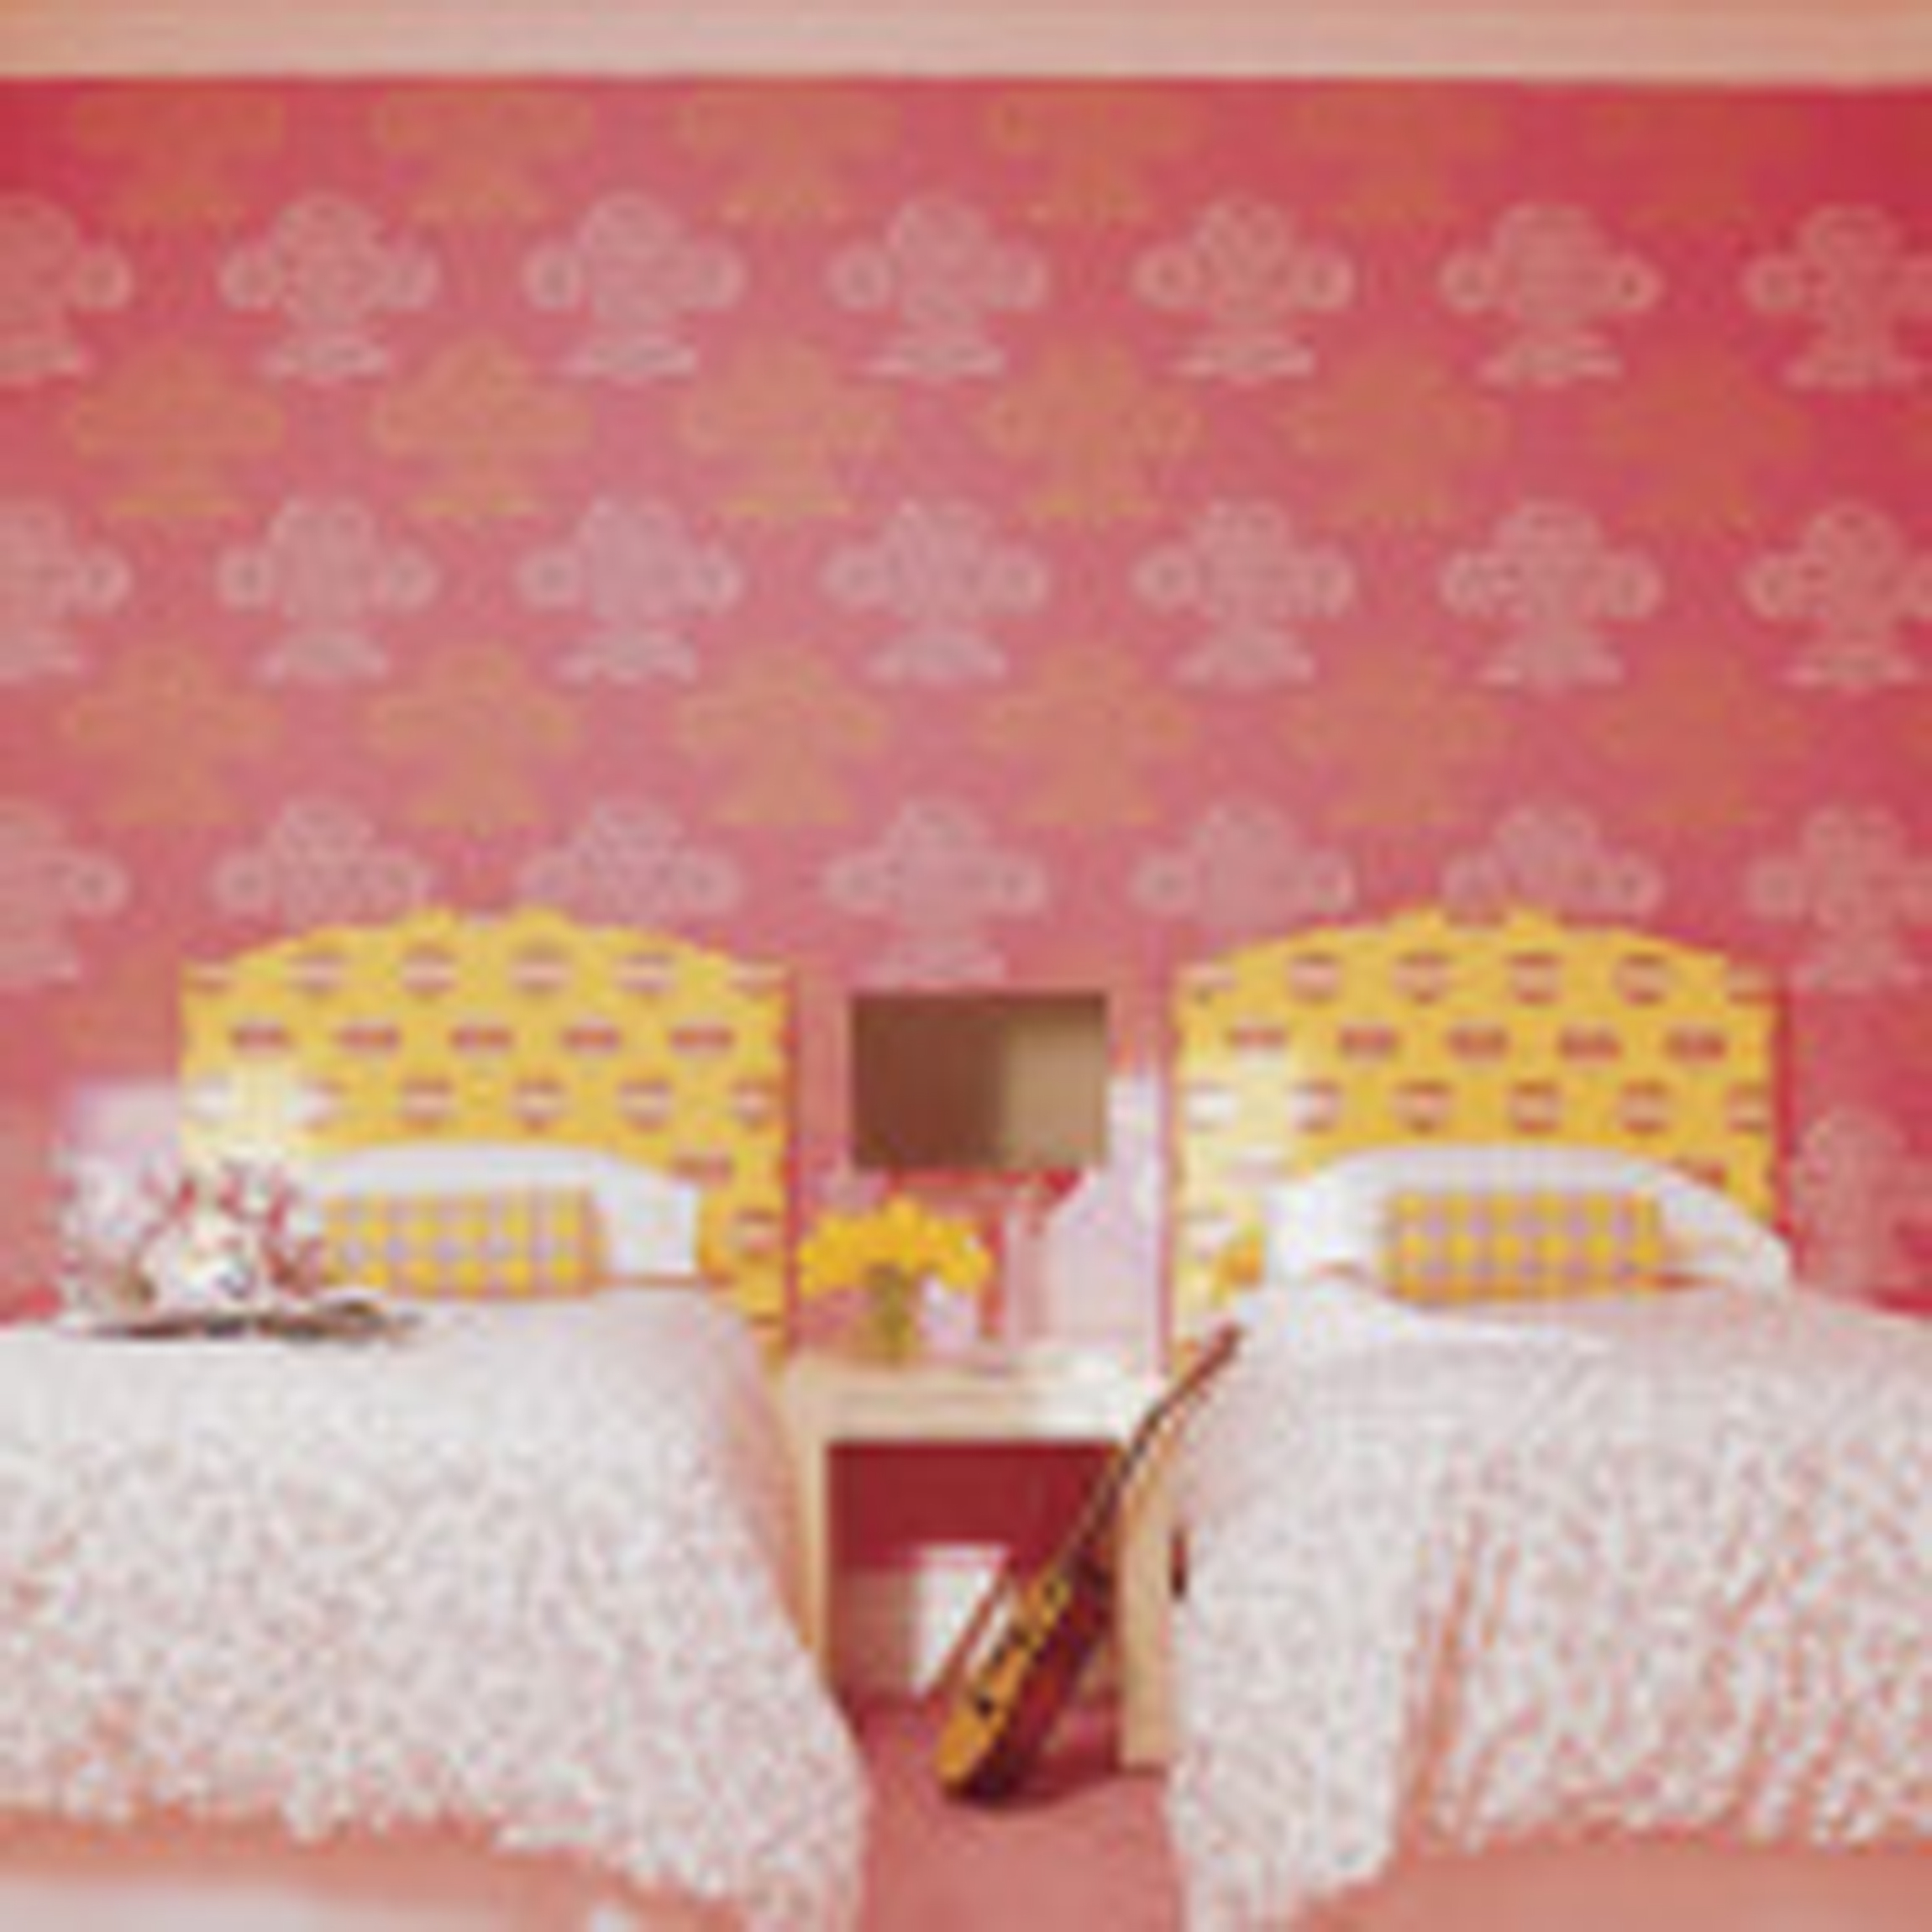 Kids Bedroom Design With Sweet Twin Bed Kids And Beautiful Pink Motif Wallpaper Fancy Fun Furnish And Decoration For Kid Bedroom Design Ideas Kid Bedroom Furniture Kid Beds (Photo 1 of 28)